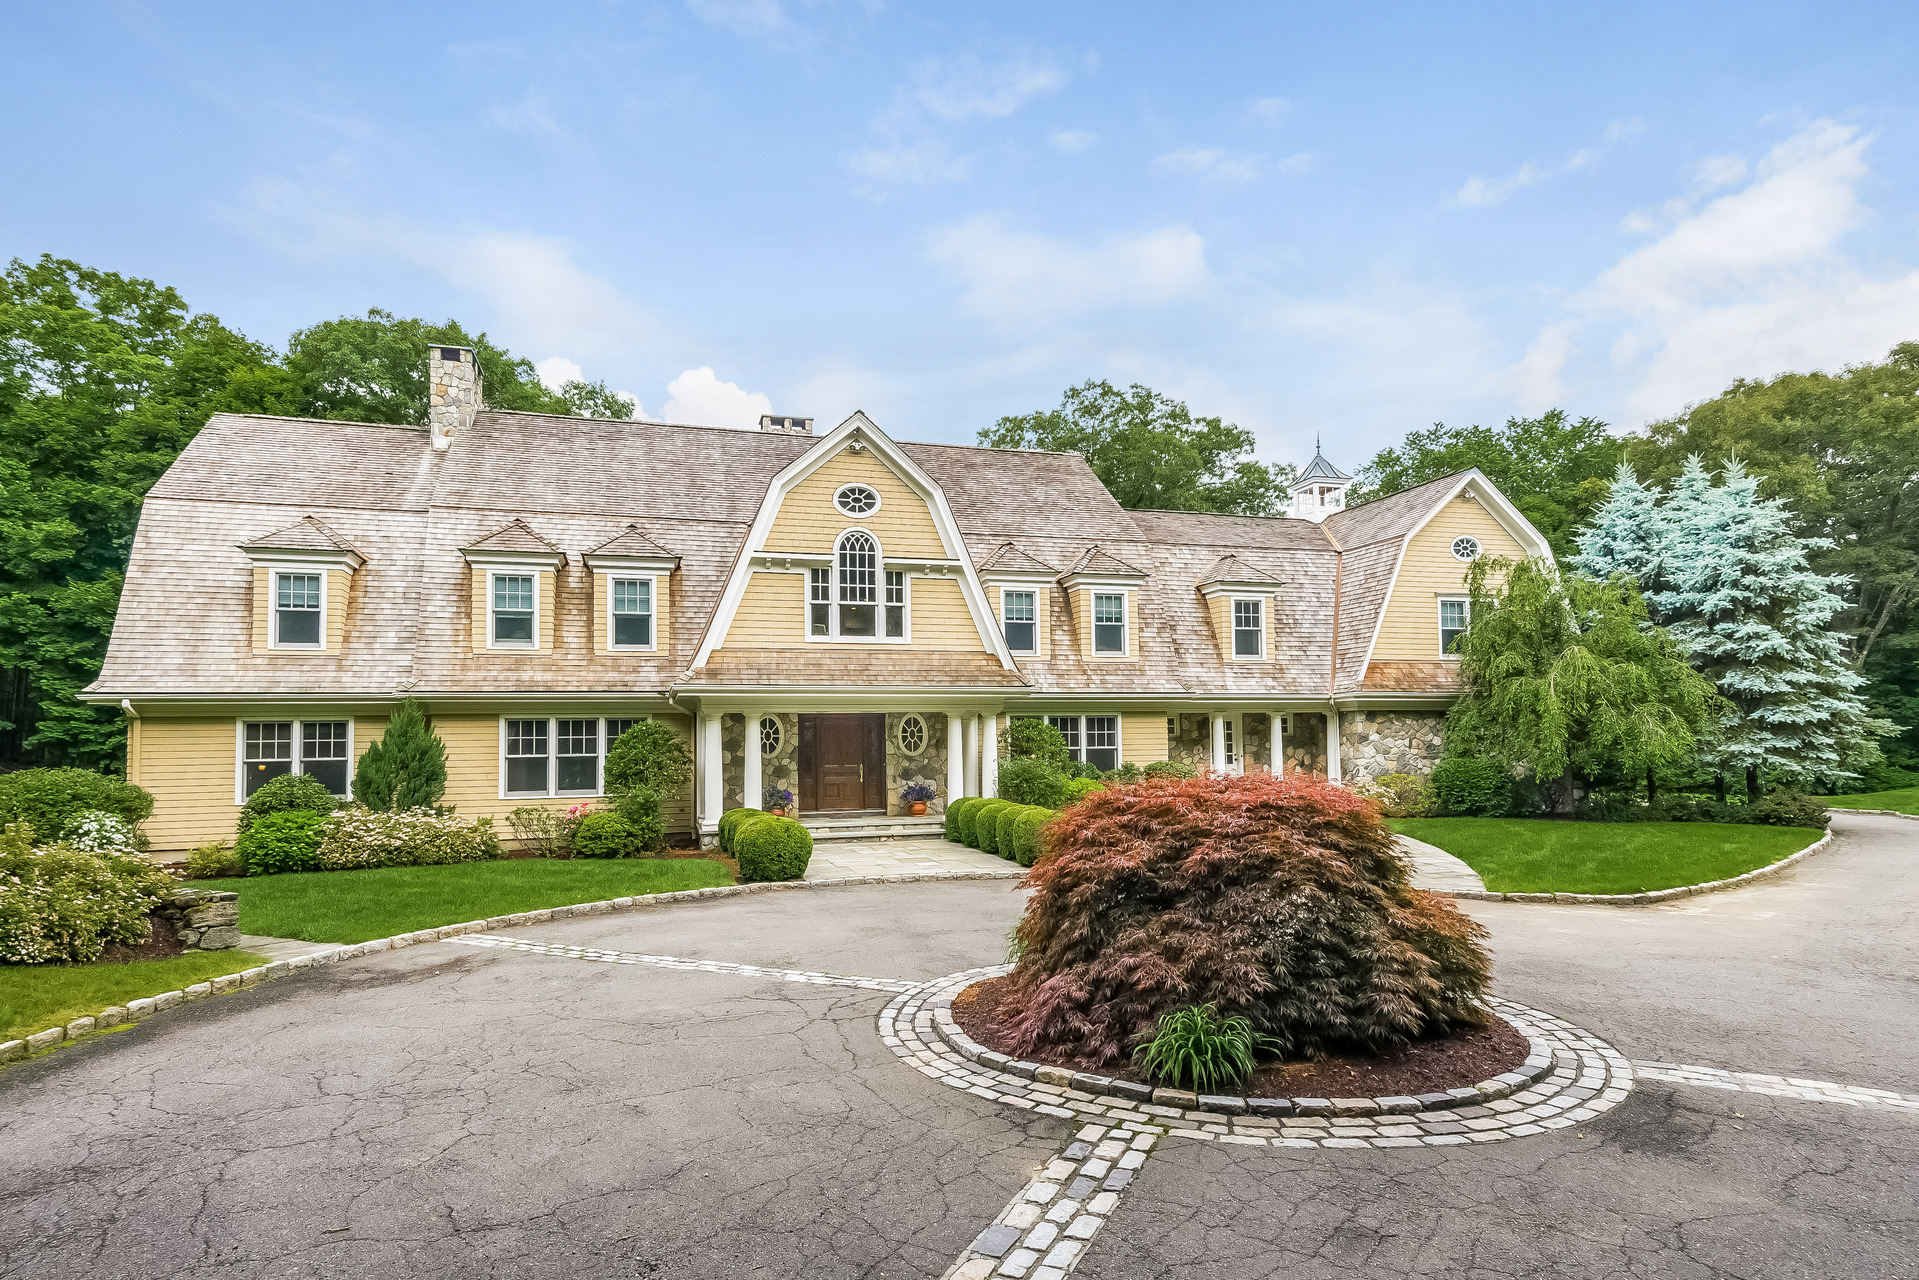 Single Family Home for Sale at Timeless Beauty 299 Ridgefield Road Wilton, Connecticut 06897 United States